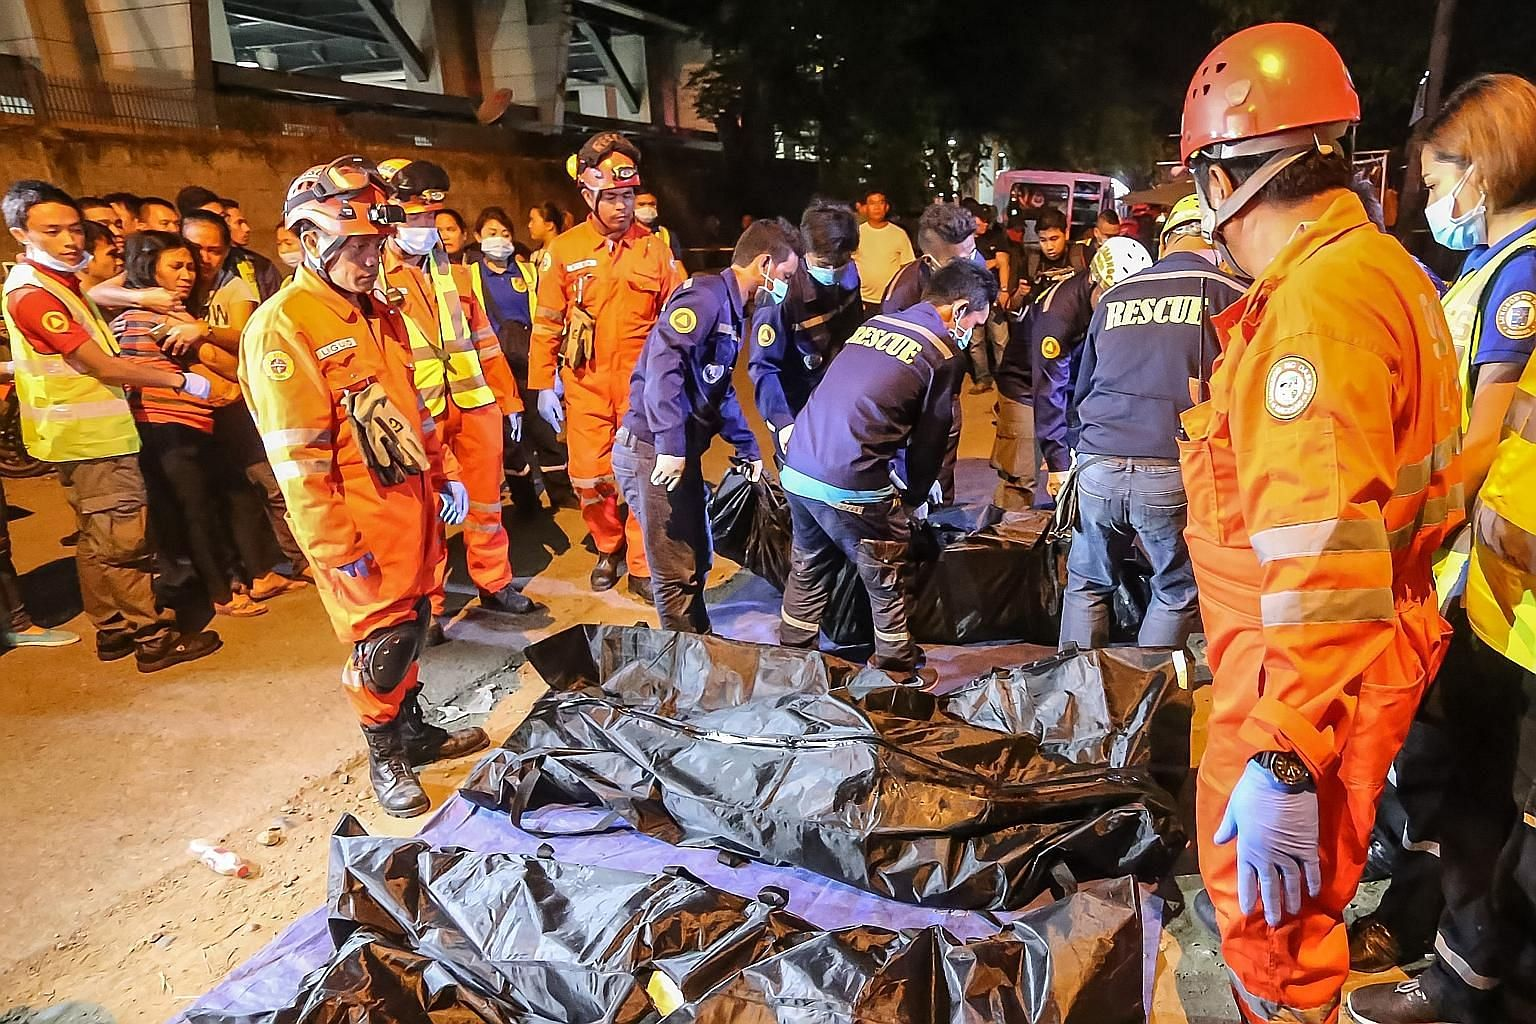 Rescue workers at work after an explosion in Davao City on Sept 2 last year. Suspected bomber Mohammad Abduljabbar Sema was arrested by Malaysian police in November after he fled from the Philippines.